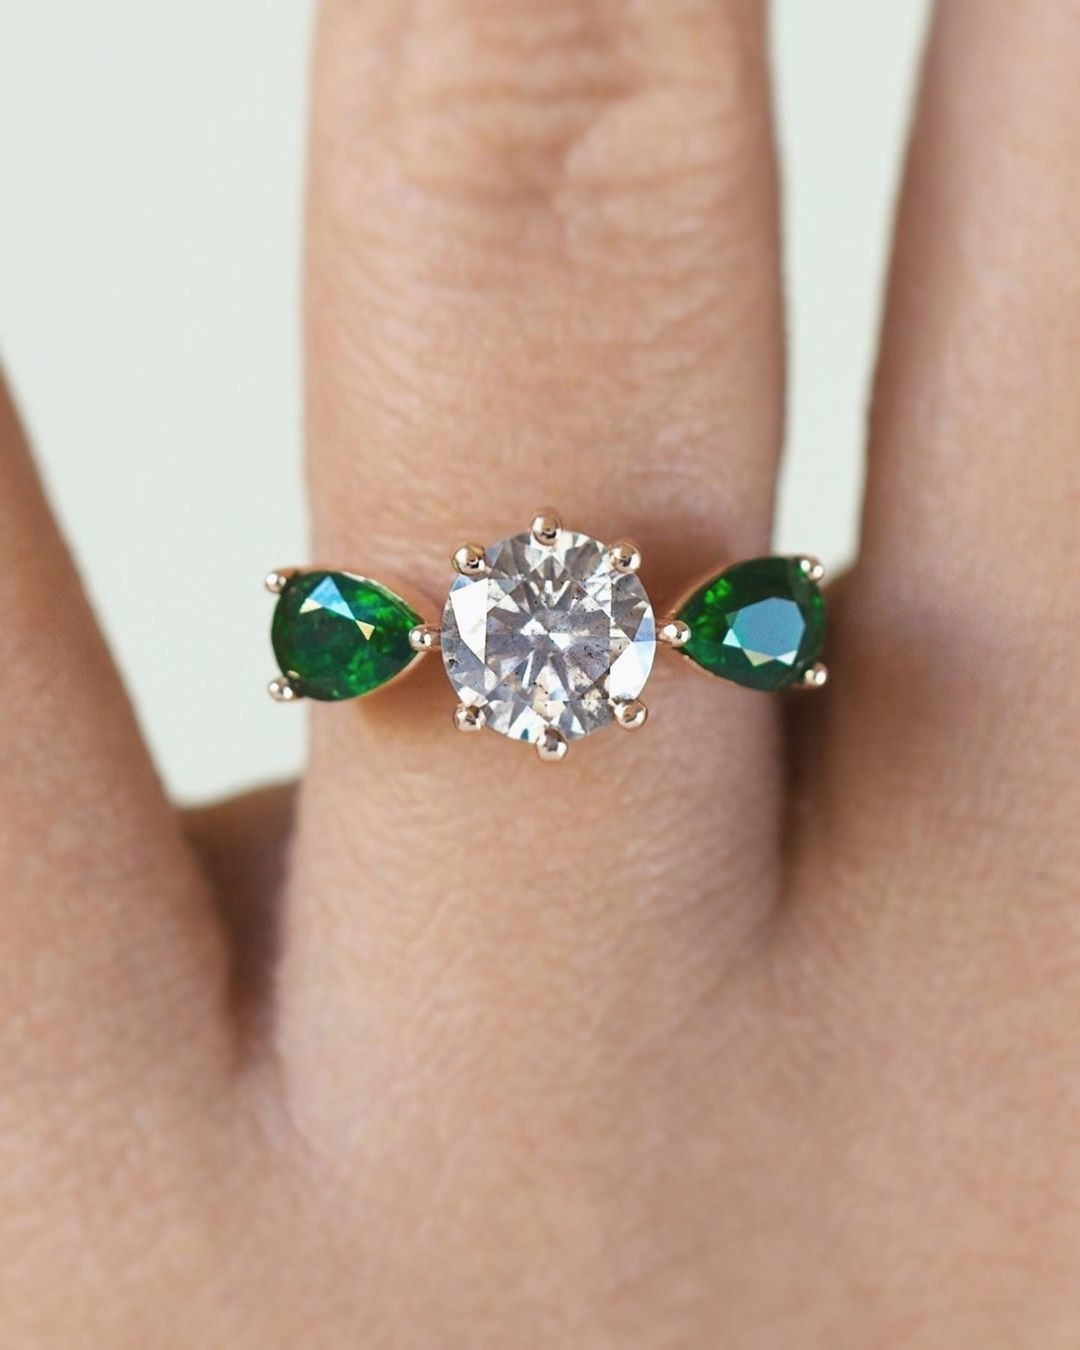 And now for something a little different... recycled rose gold, recycled diamond, and Tsavorite garnet. 💚💚💚